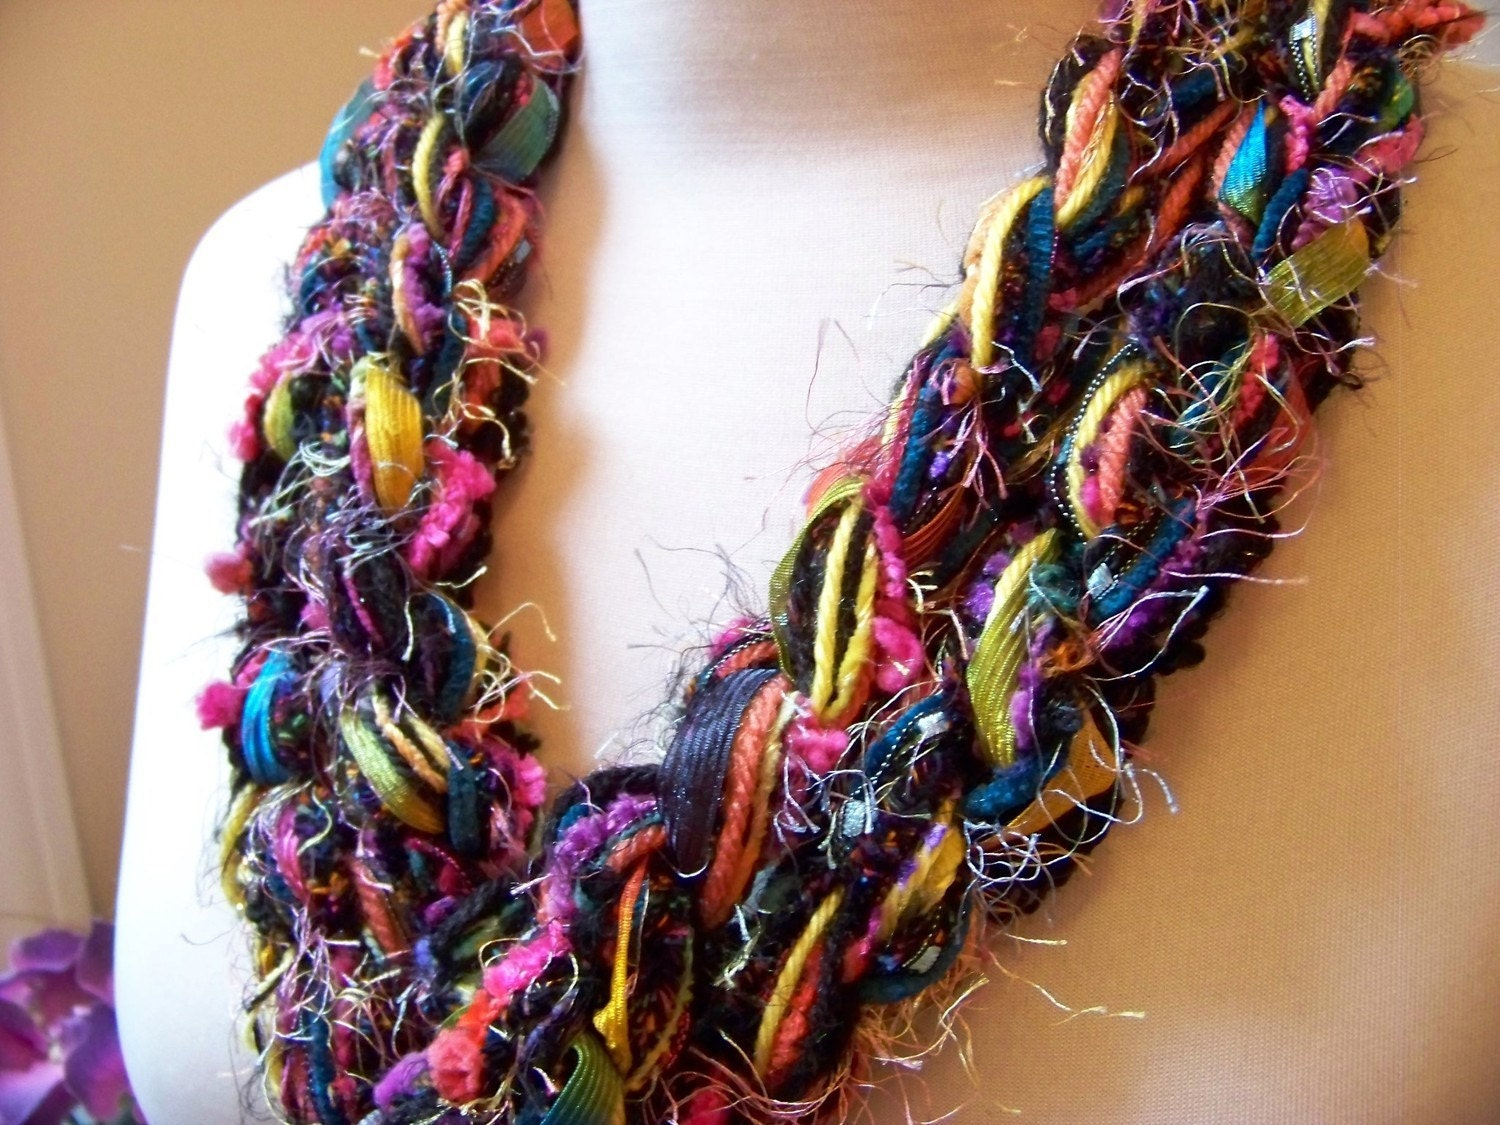 Crochet Scarf - CONFETTI Skinny Pippy Scarf - Black, Hot Pink, Teal, Lemon Yellow, Coral